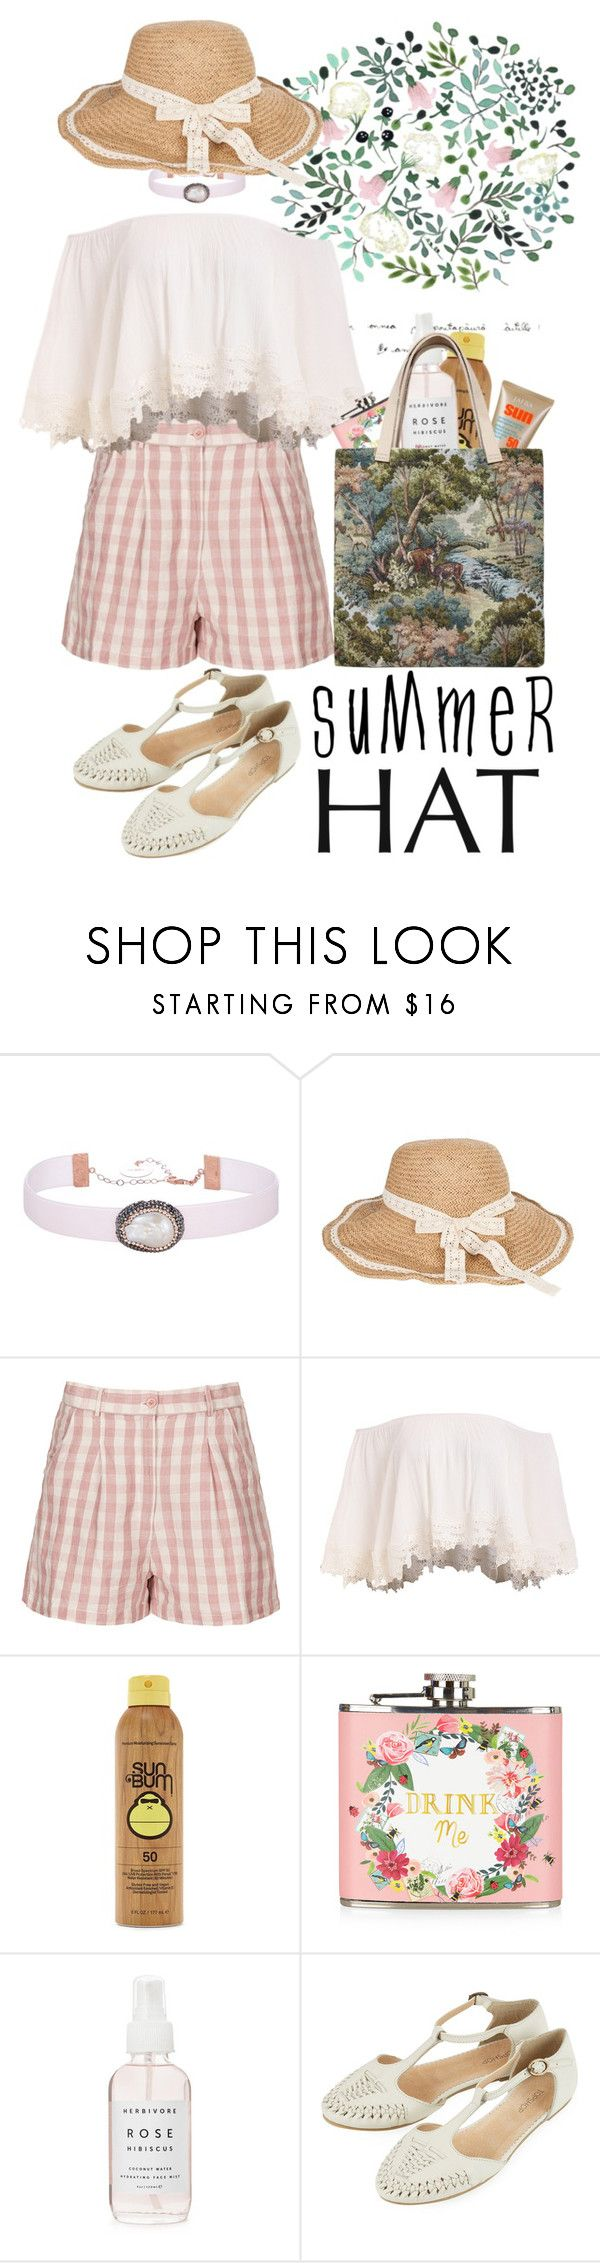 """""""Summer hat"""" by beachan ❤ liked on Polyvore featuring Soru Jewellery, Topshop, Forever 21, Accessorize, Bless and summerhat"""